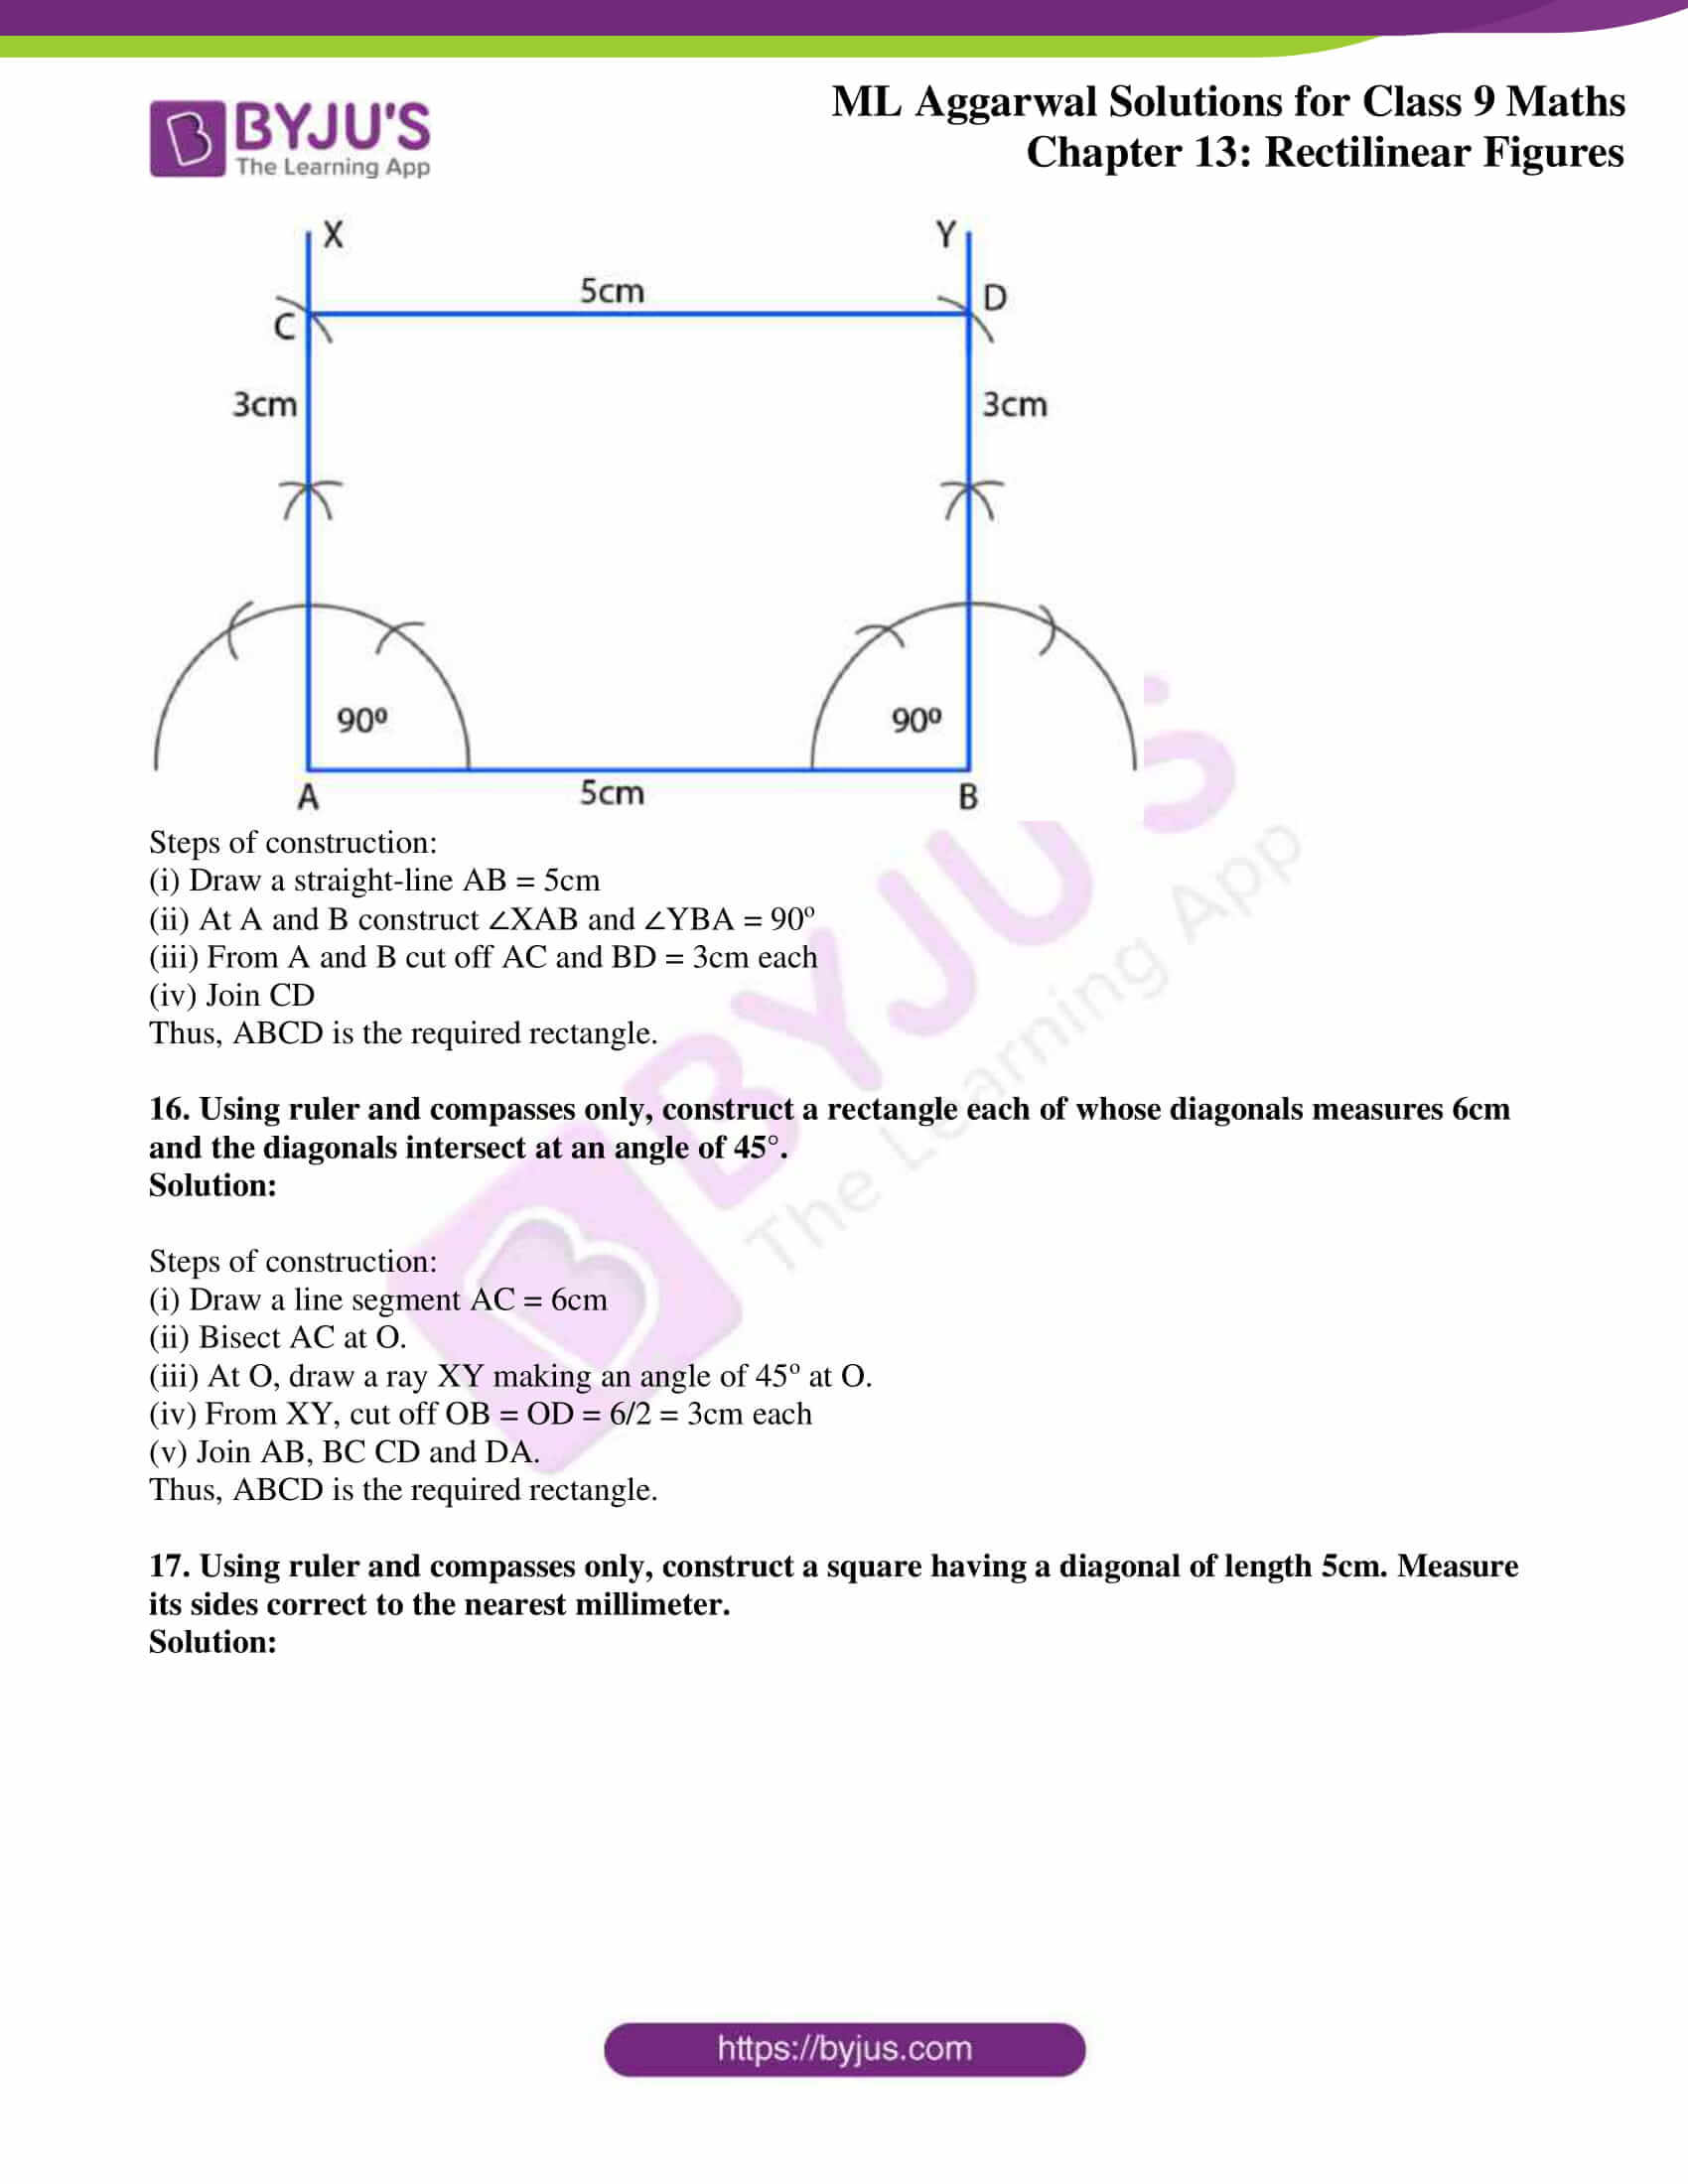 ml aggarwal solutions for class 9 maths chapter 13 33